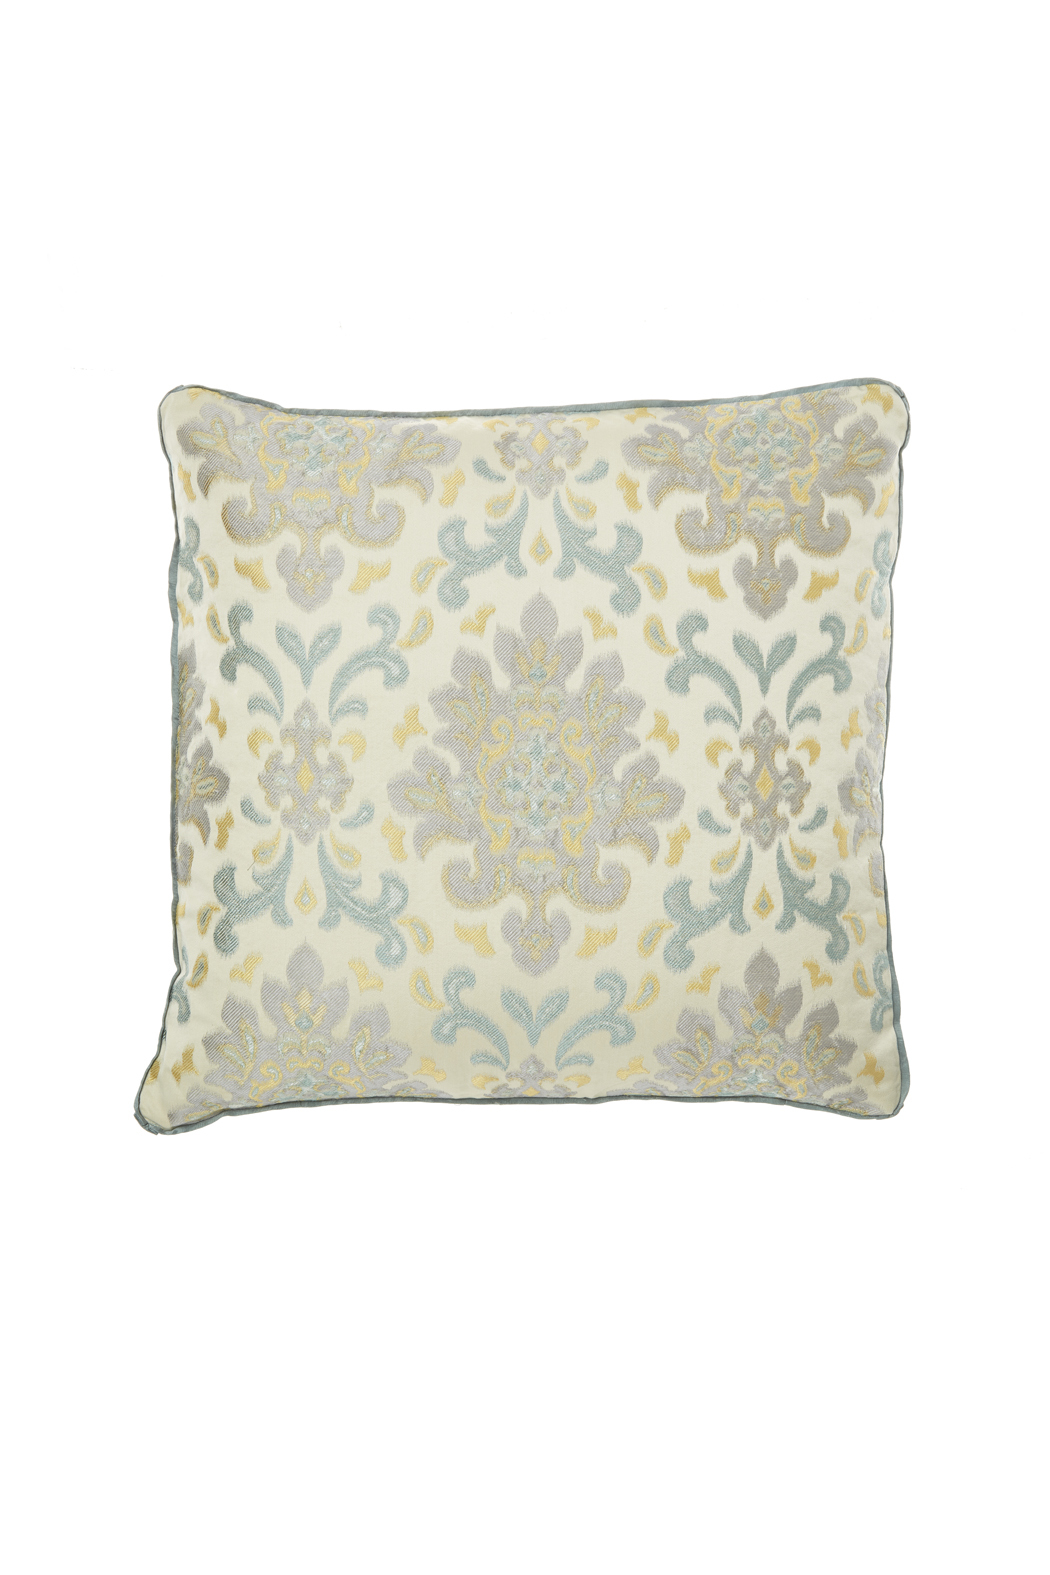 Bella Notte Jacquard Throw Pillow from Omaha by Early To Bed ? Shoptiques